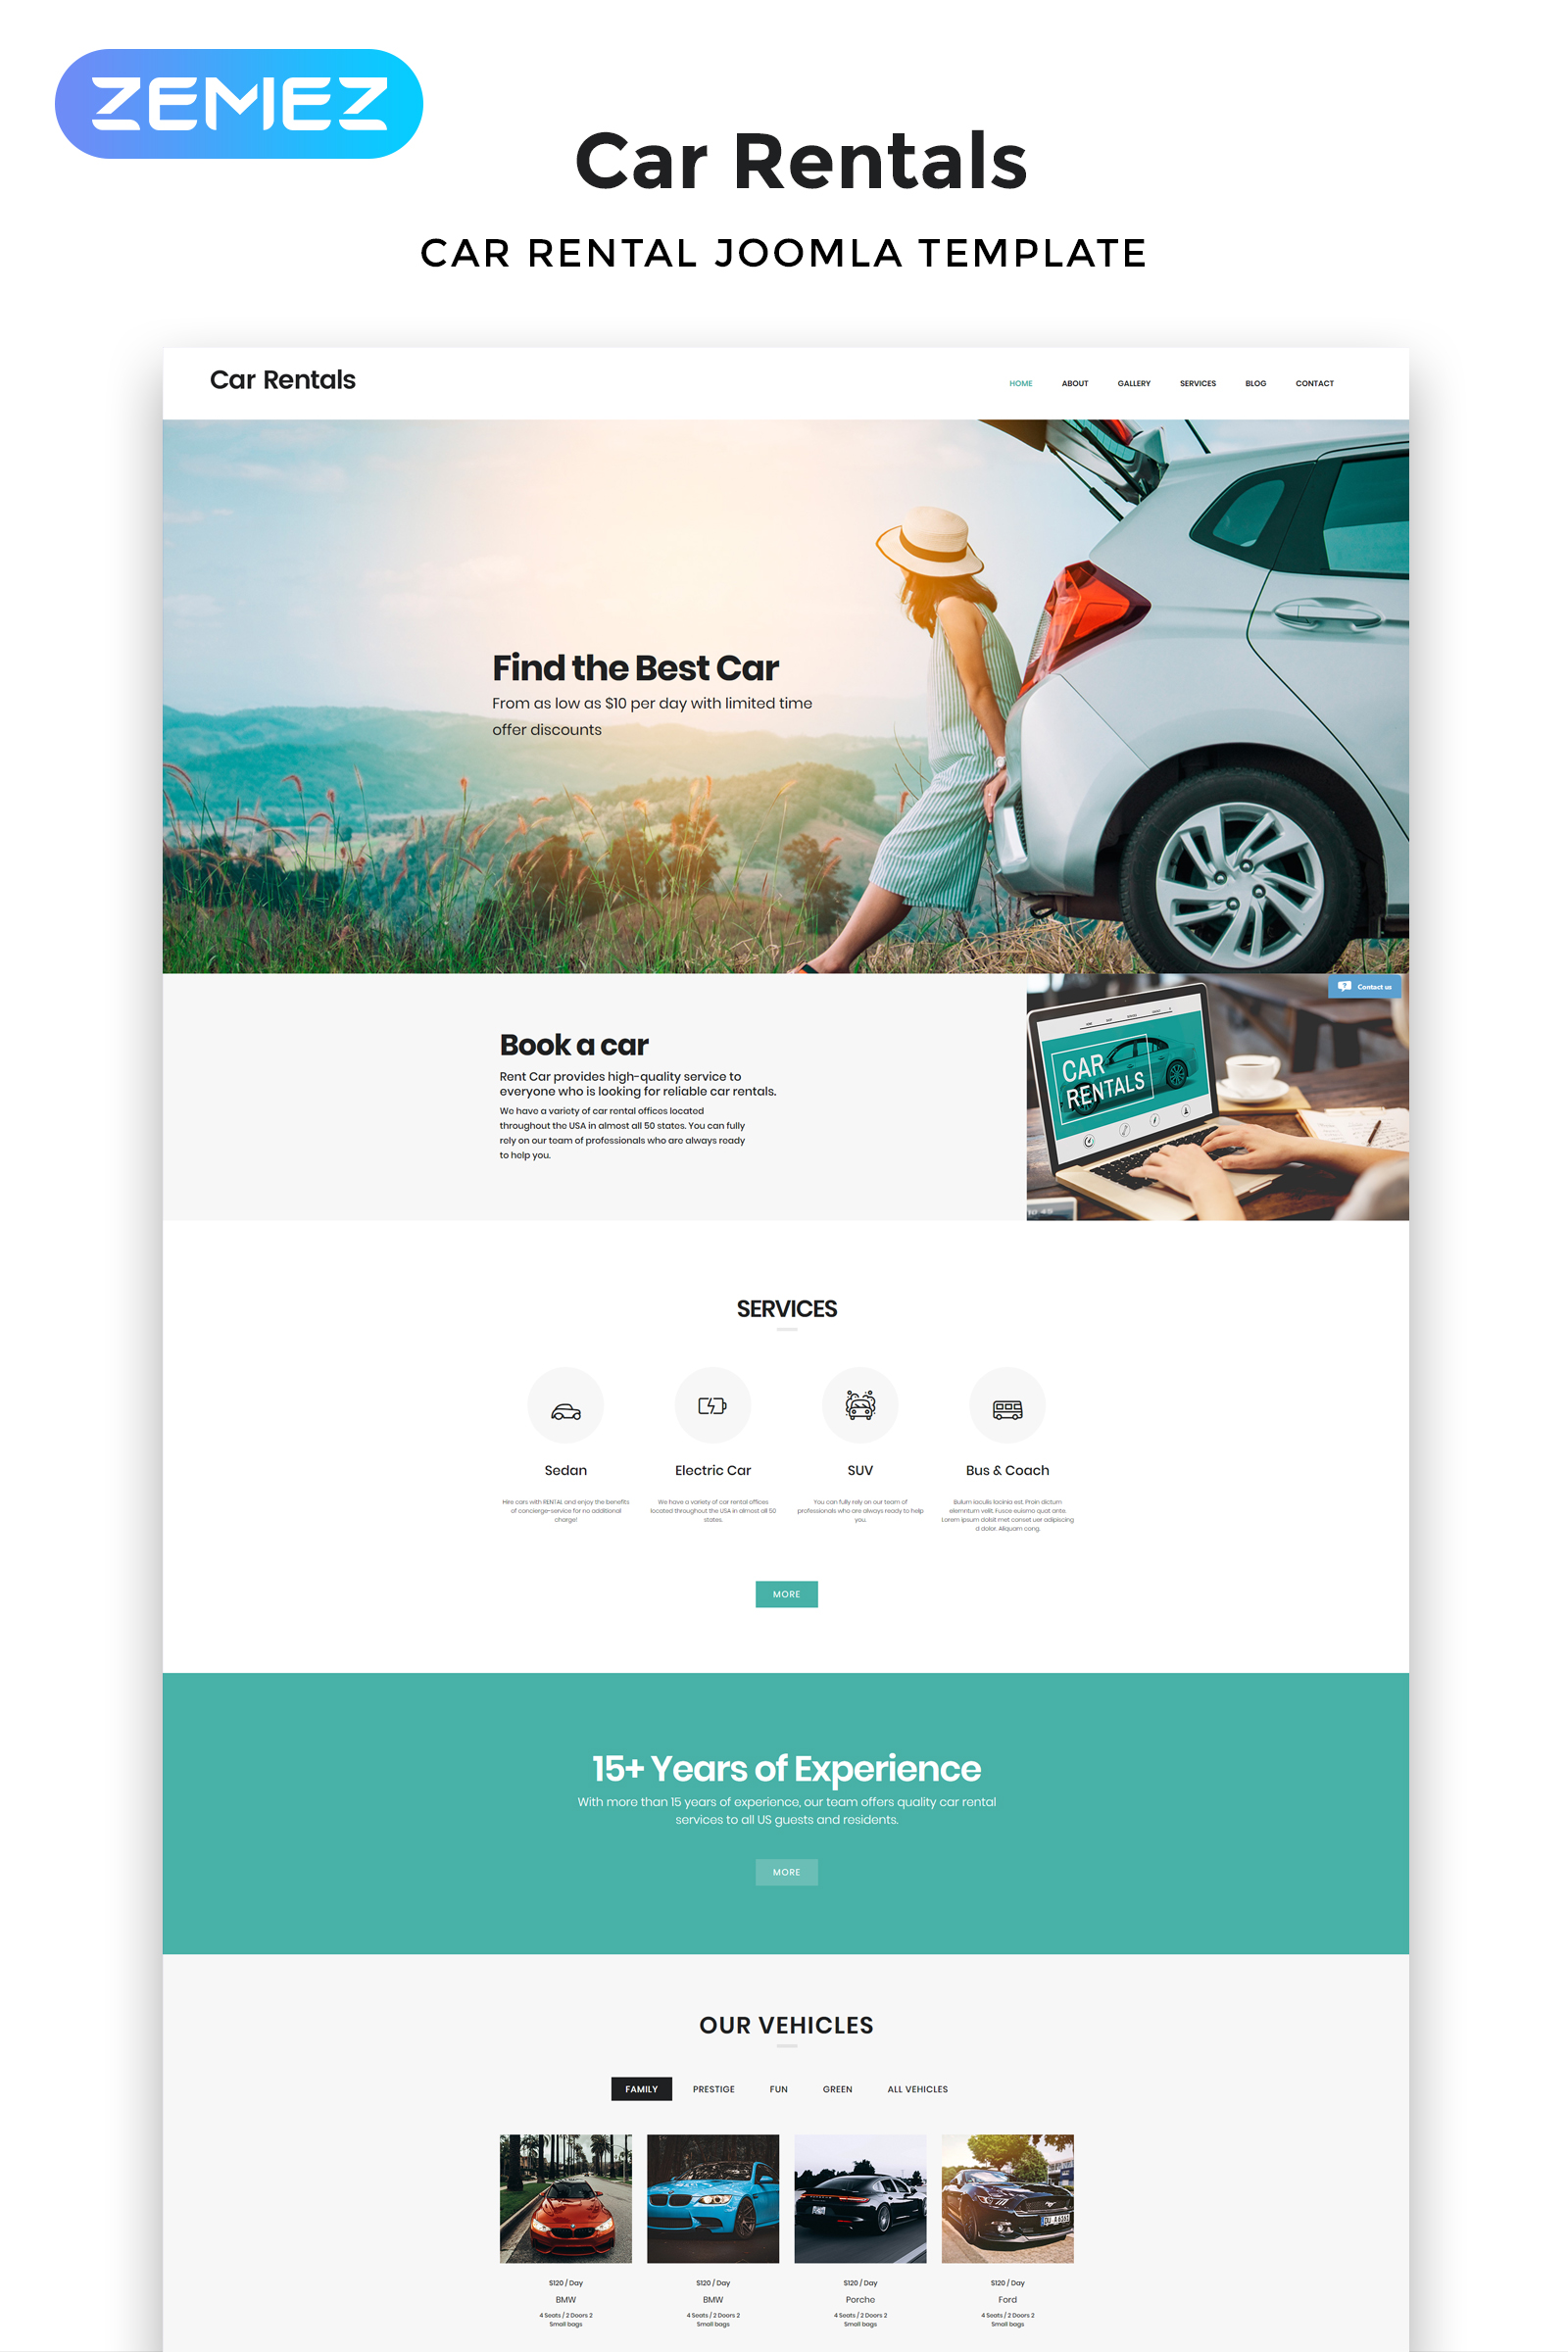 jooma templates - car rental joomla theme